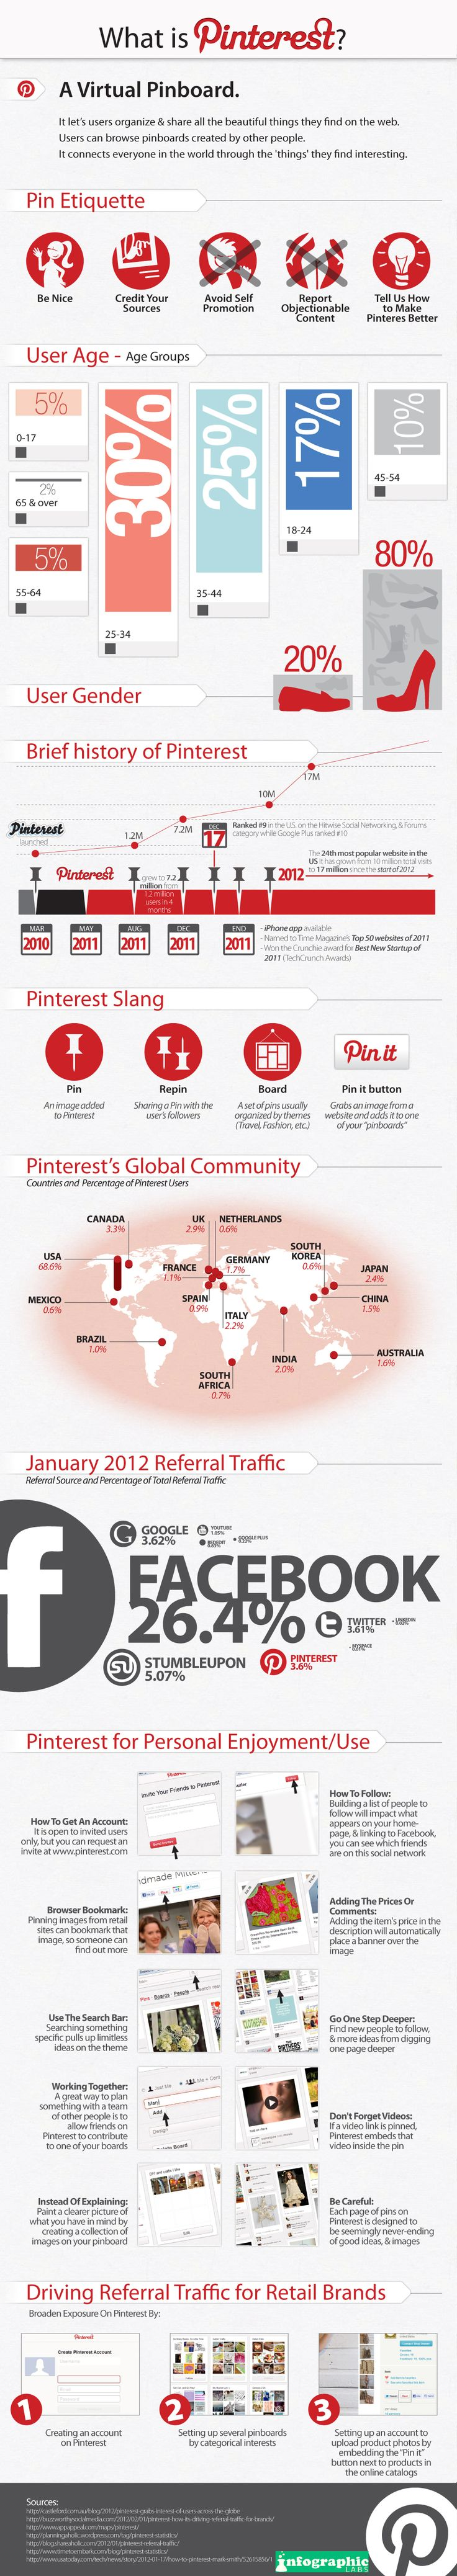 What is Pinterest? #infographic